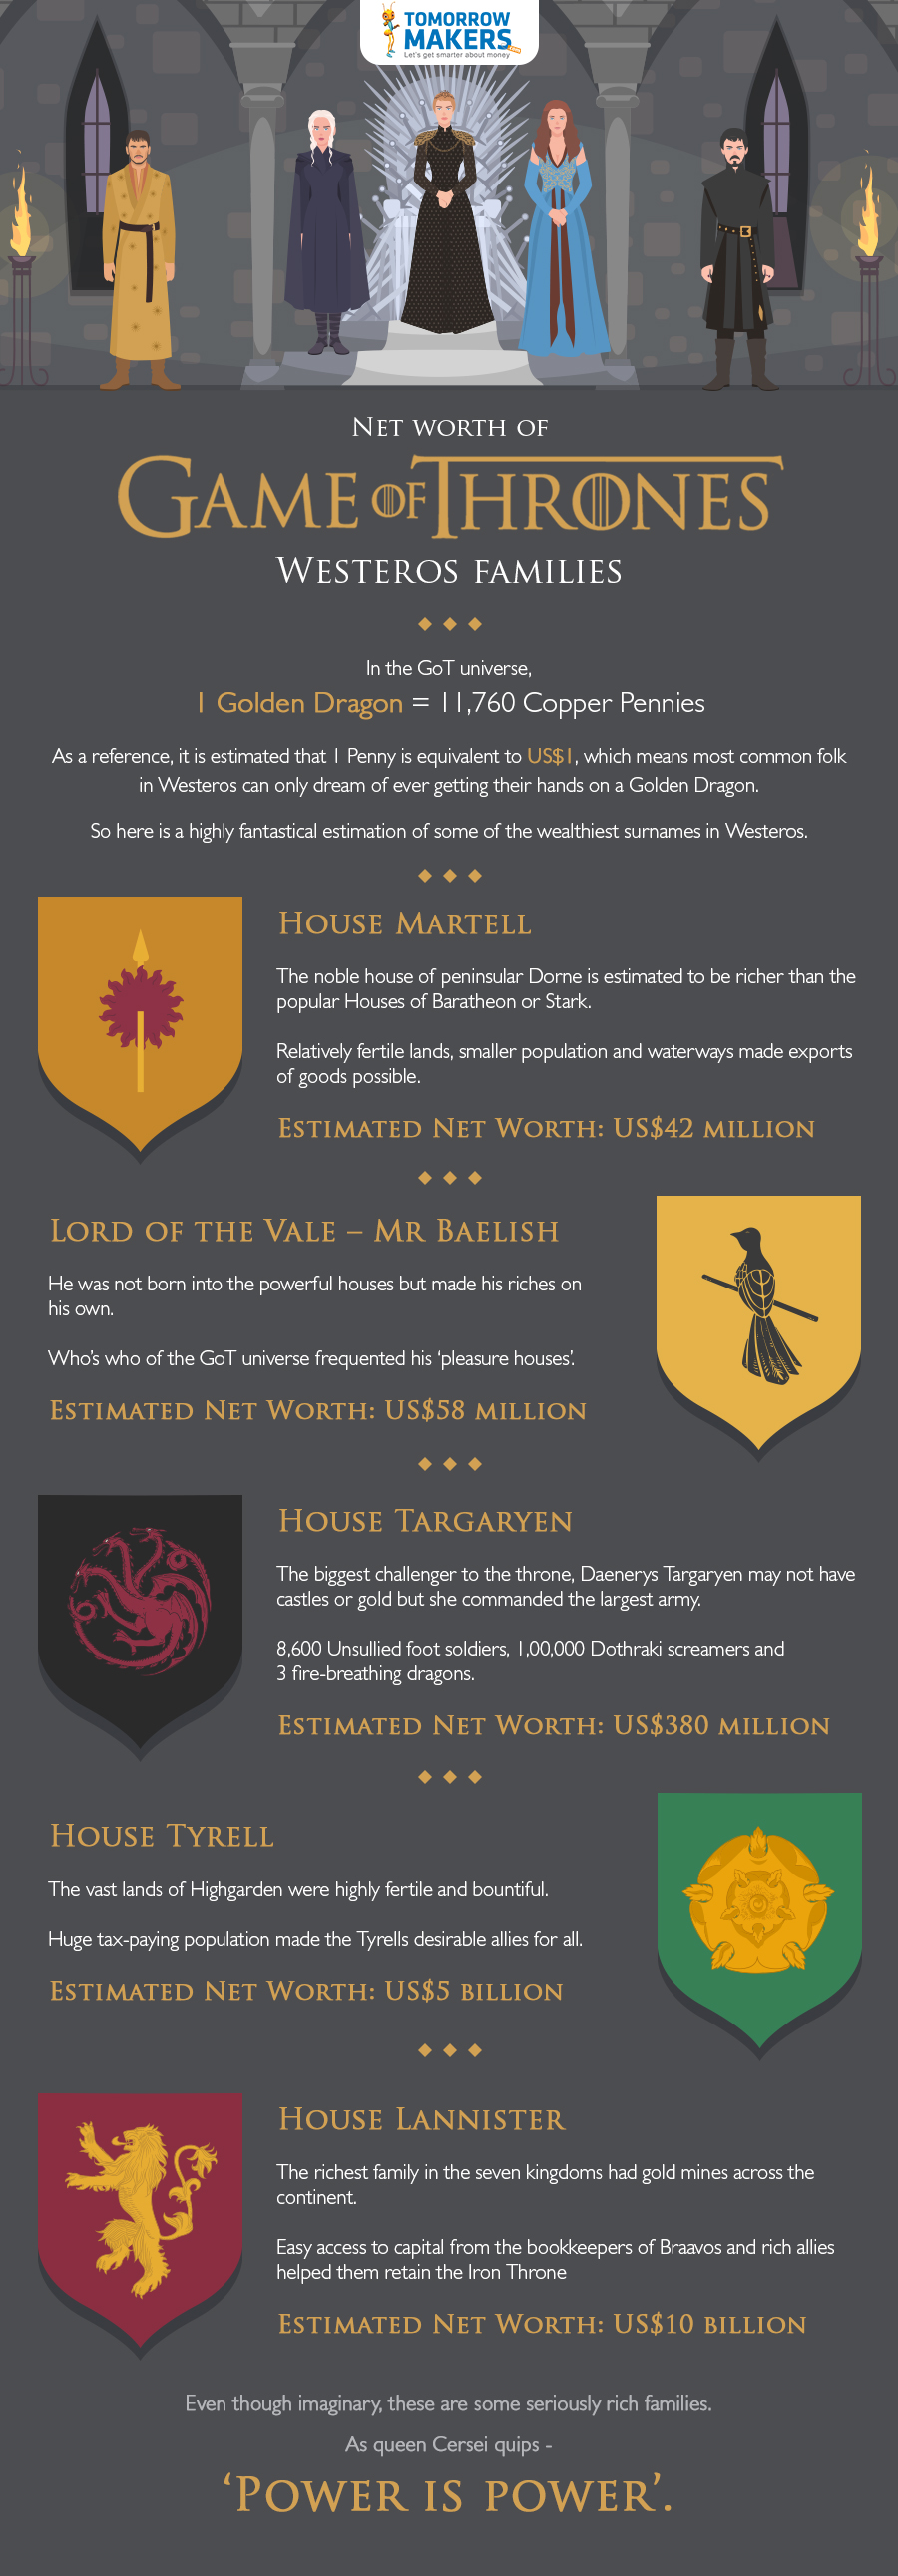 Net worth of Game of Thrones' Westeros families